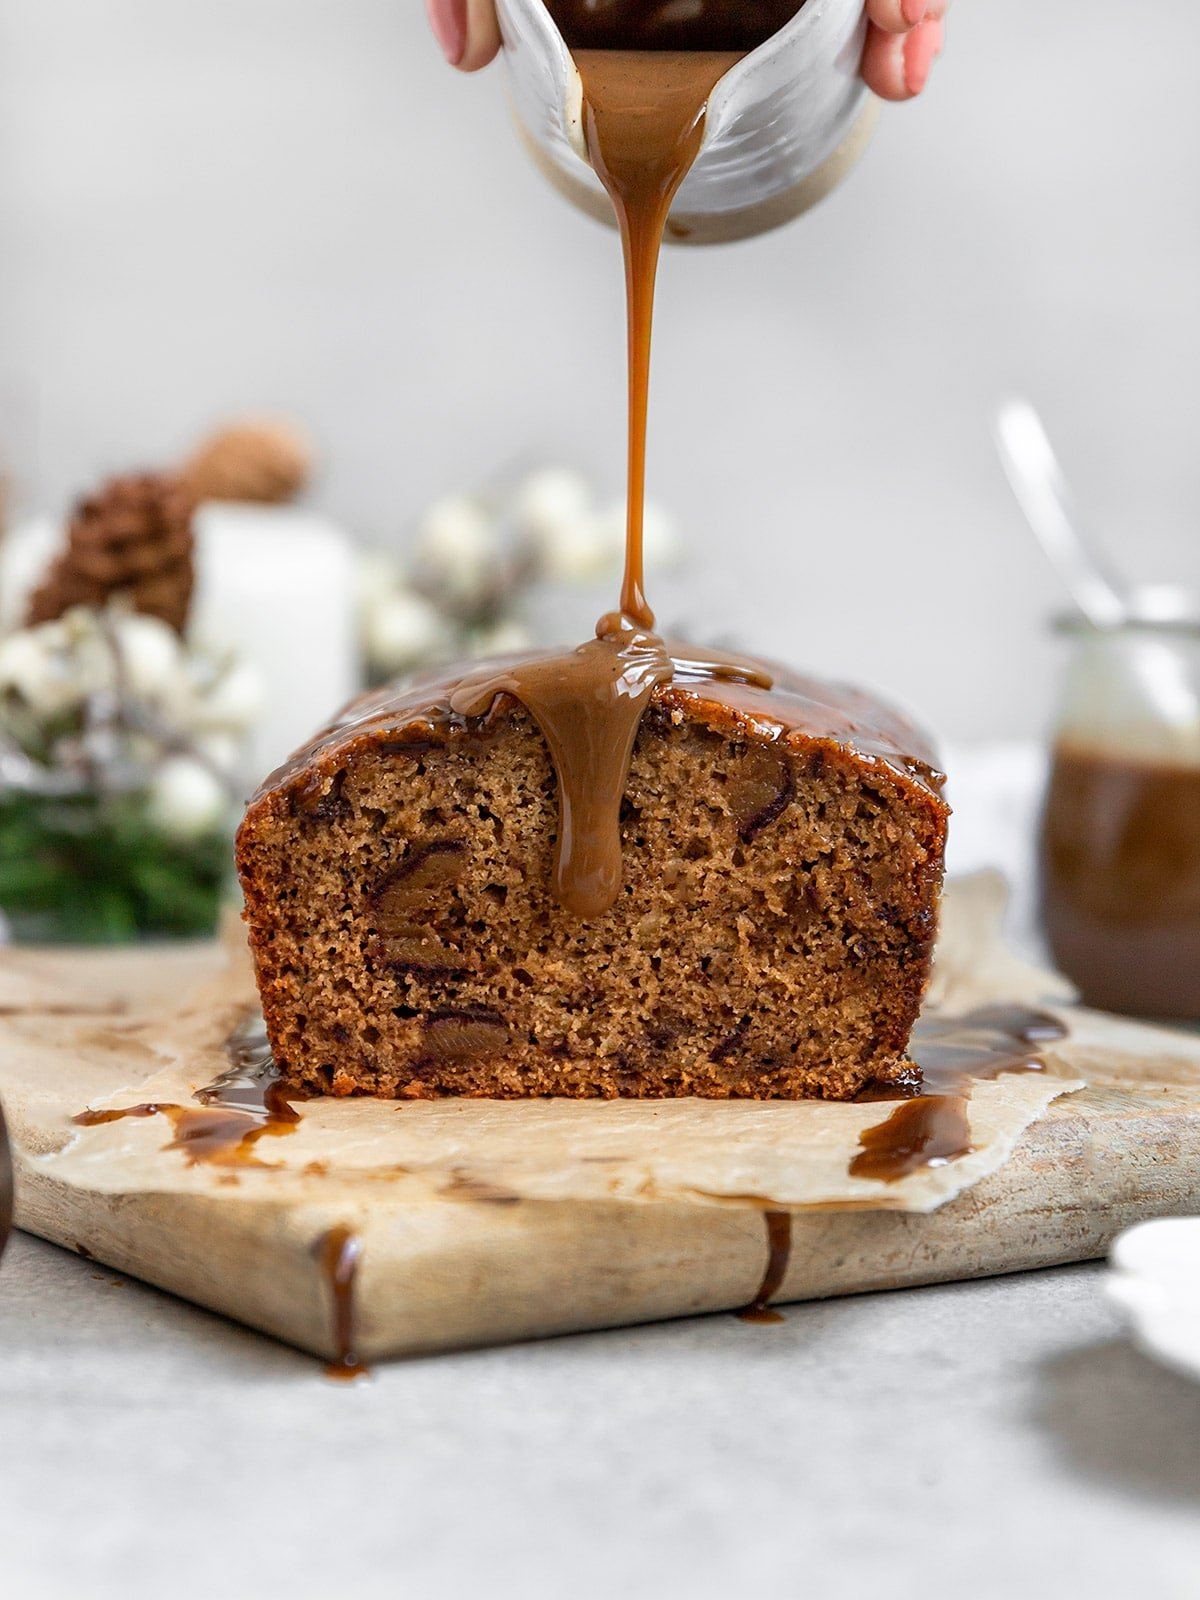 date cake getting drizzled with caramel sauce